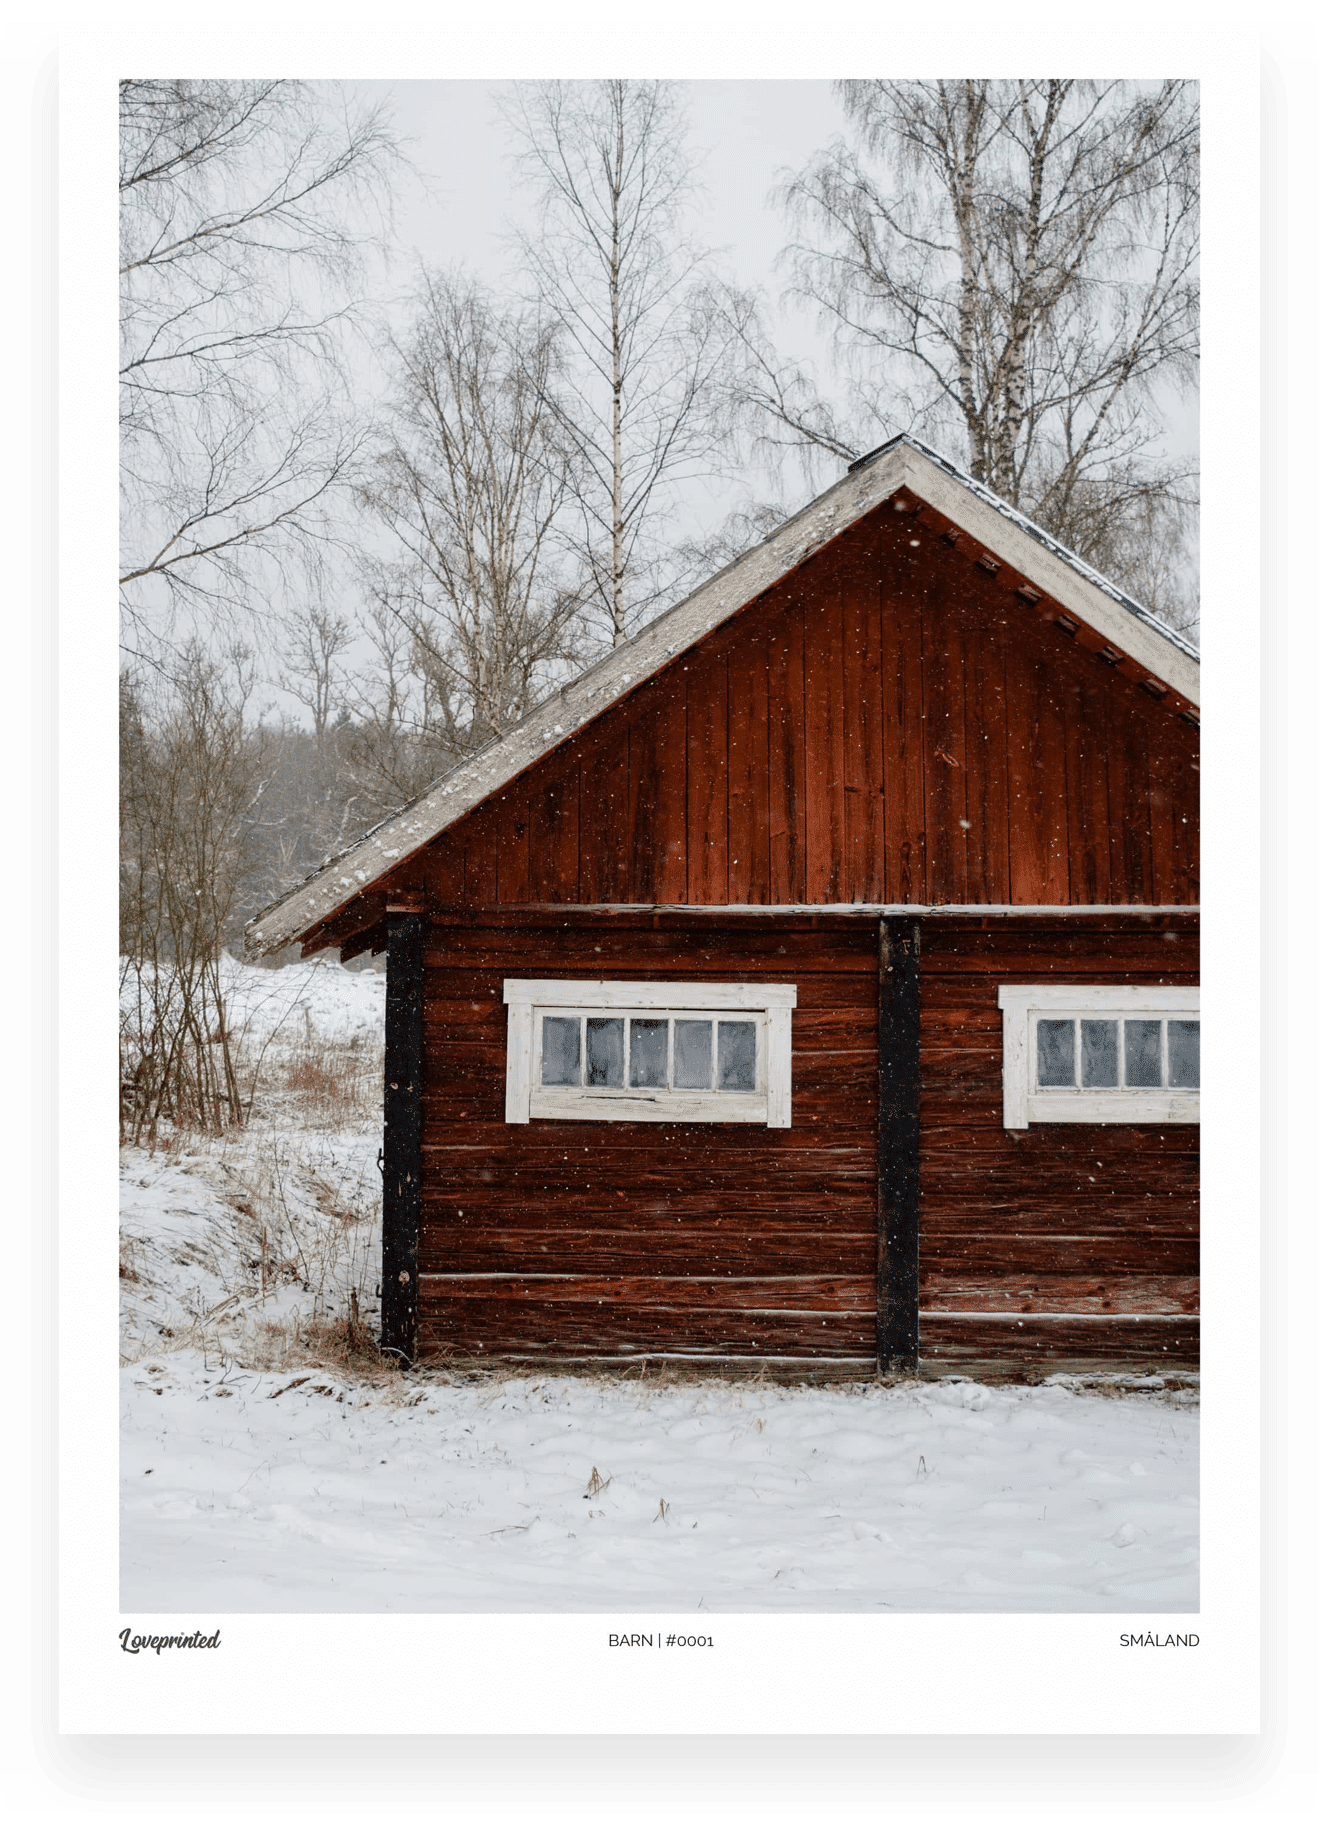 Barn | An Image of a Swedish Barn made by Loveprinted